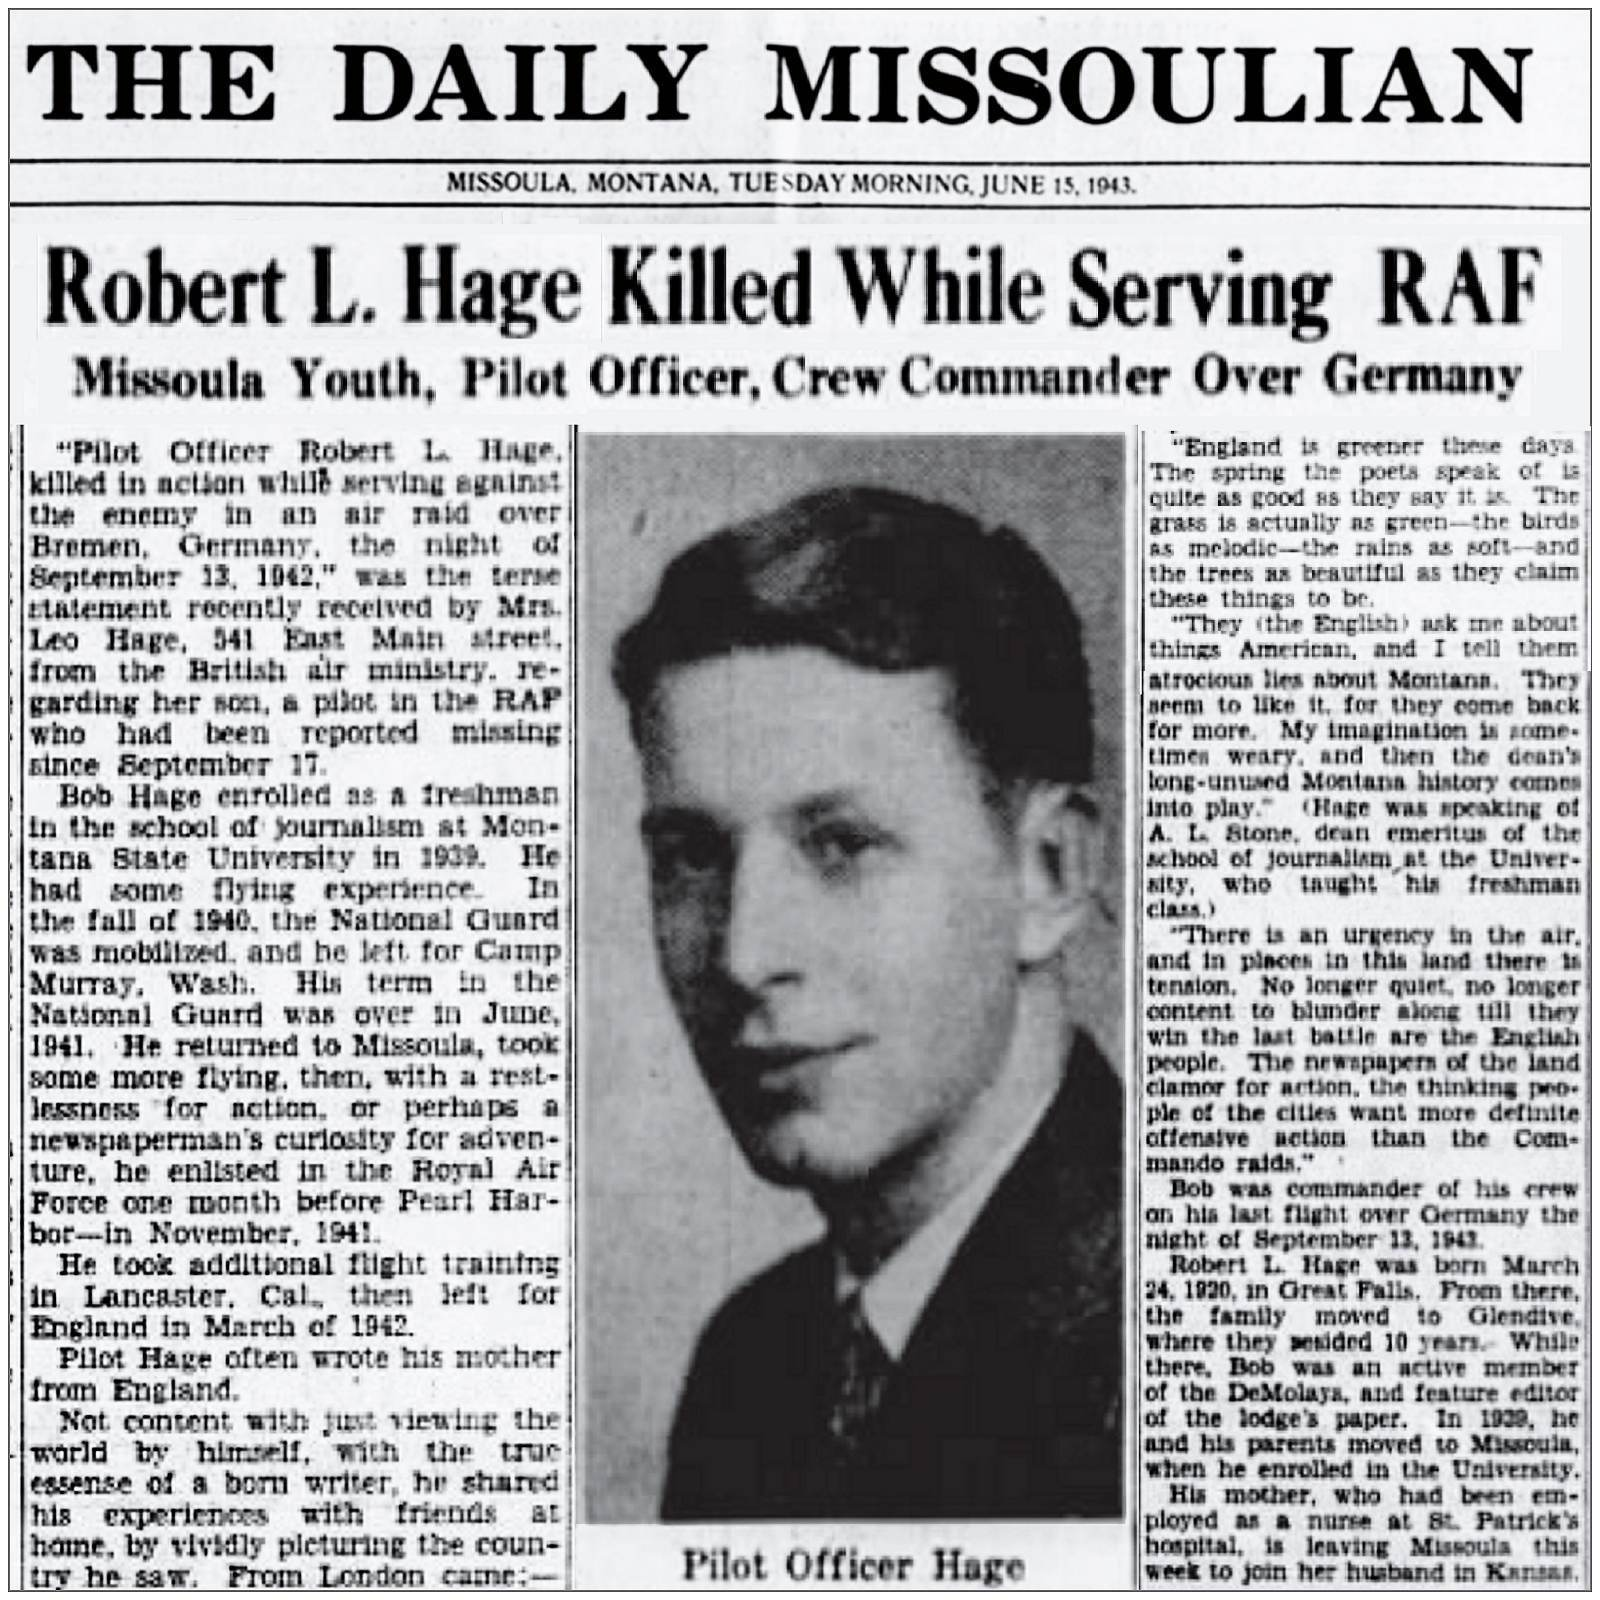 Article in The Daily Missoulian - 15 Jun 1943